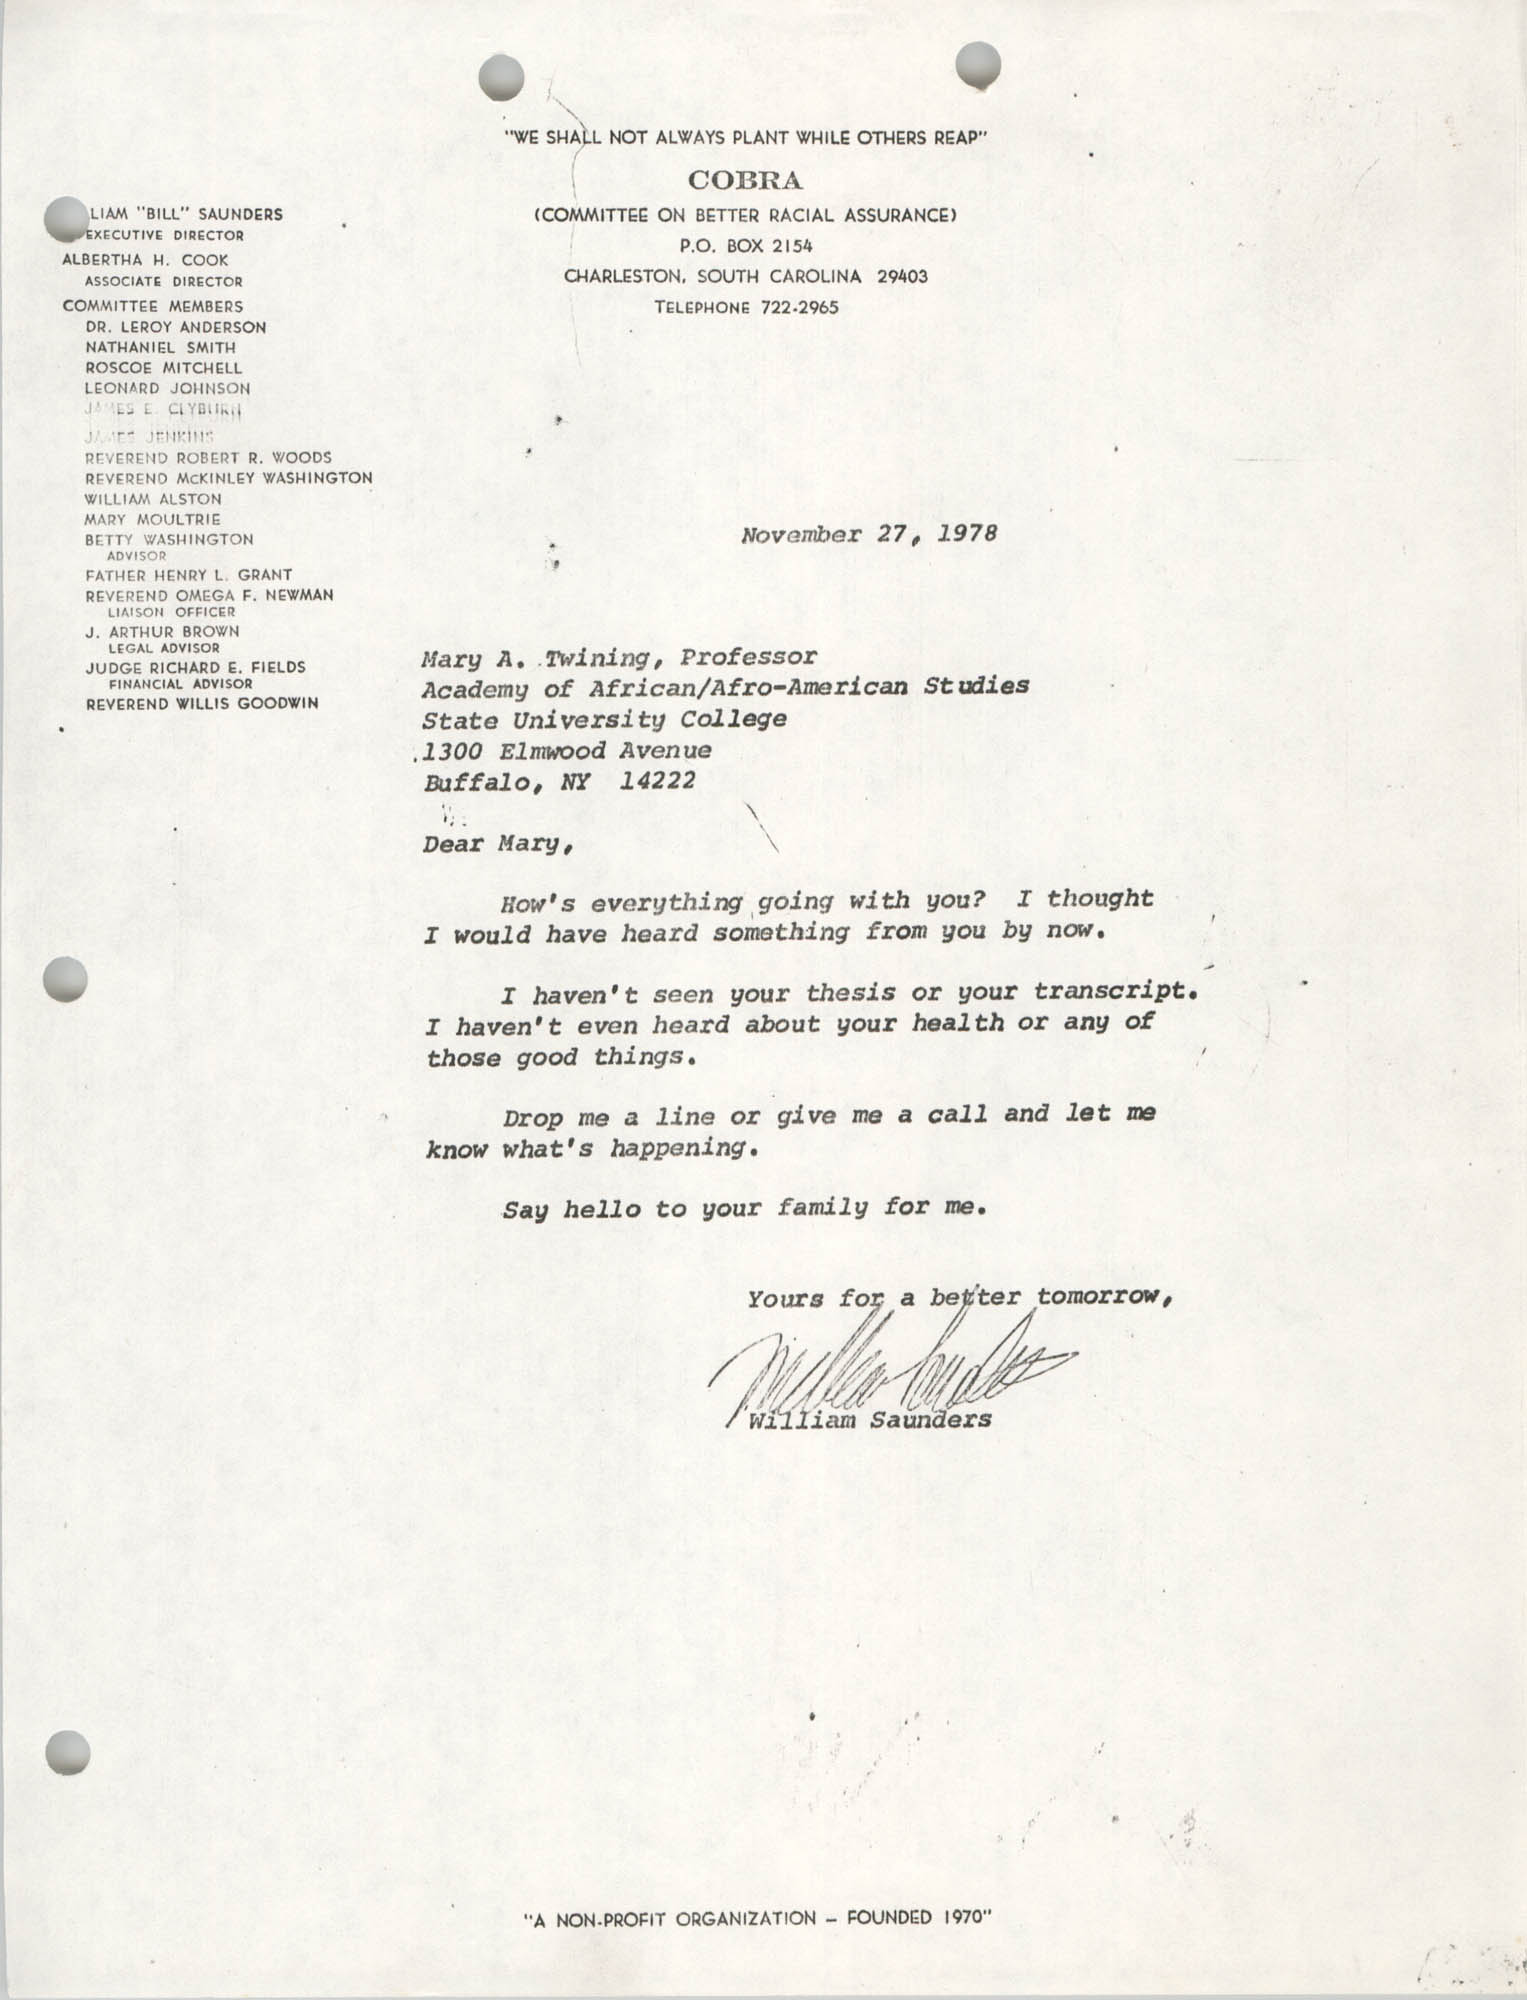 Letter from William Saunders to Mary A. Twining, November 27, 1978